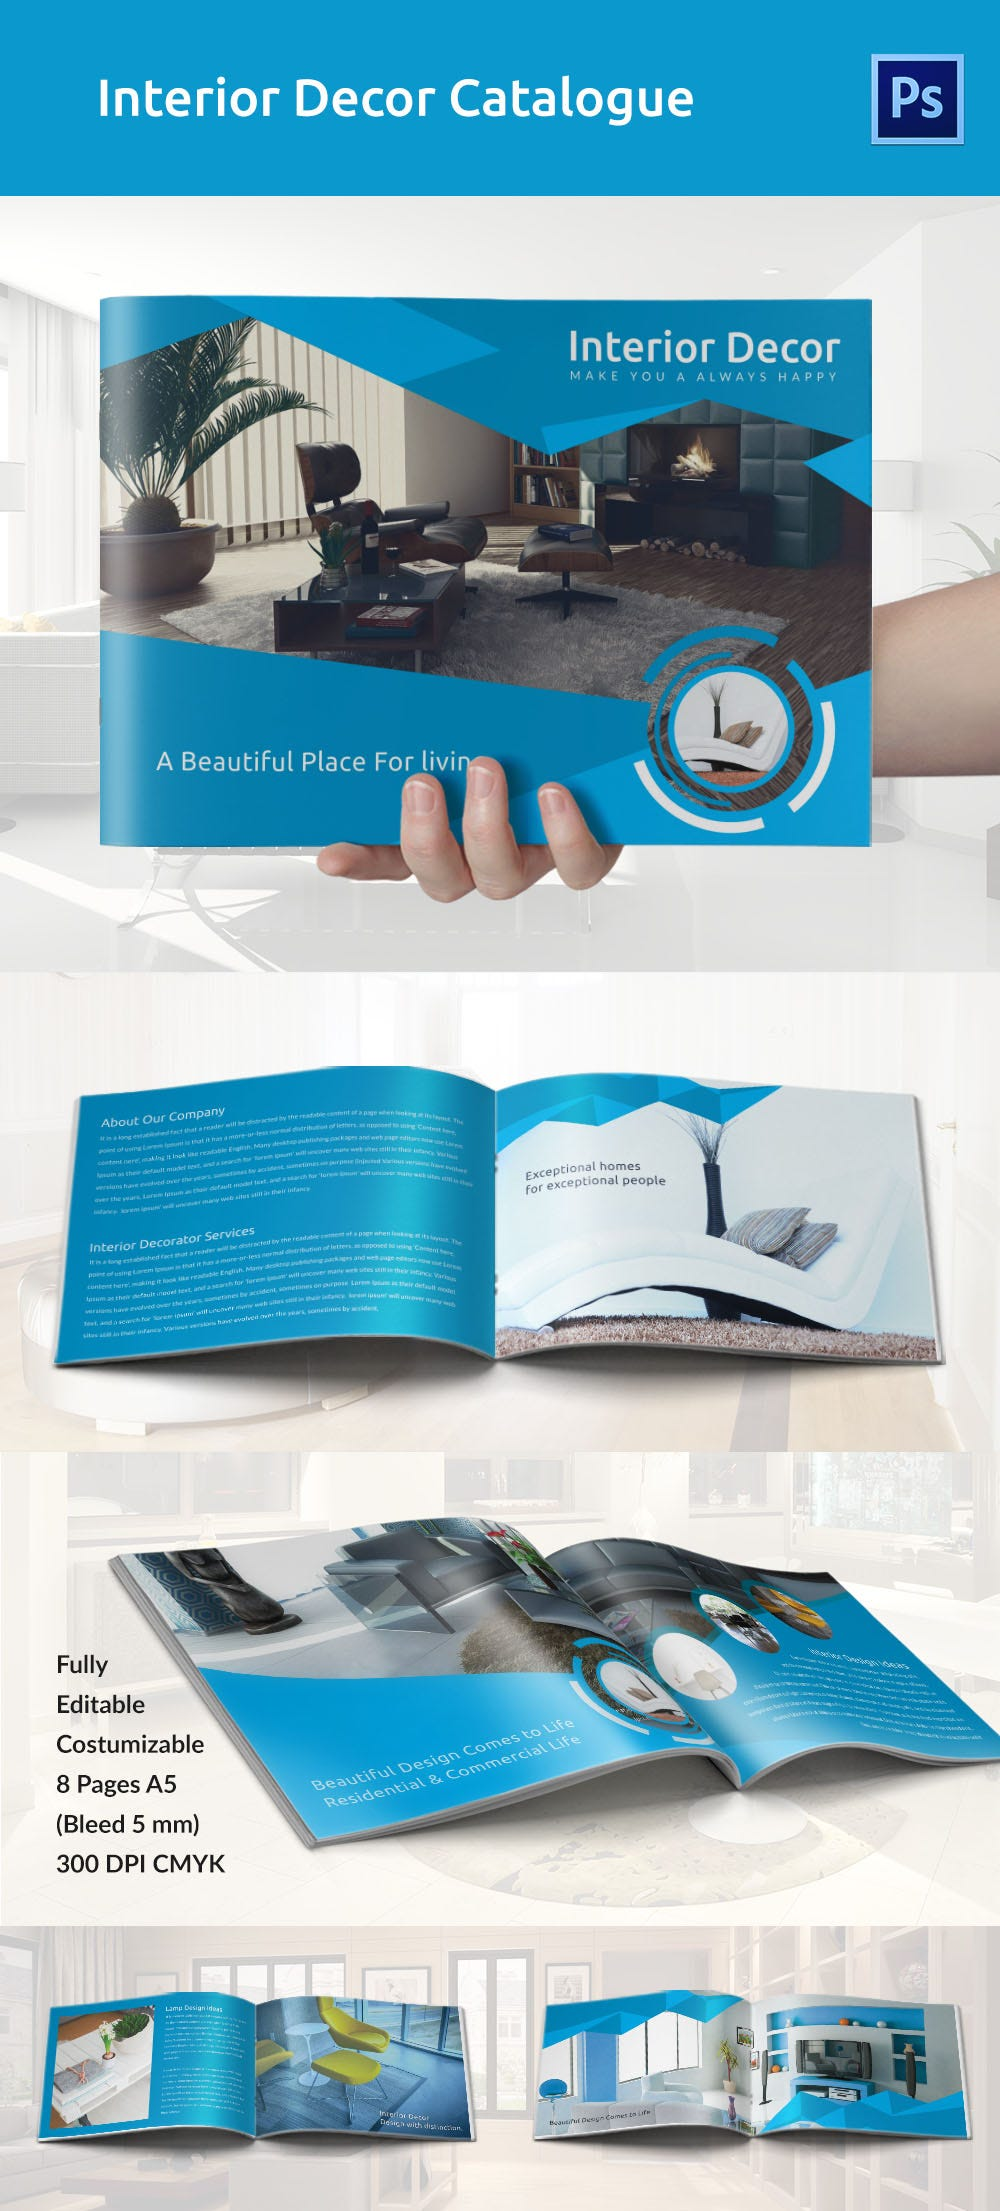 brochure design templates pdf free download - 17 interior decoration brochure free word psd pdf